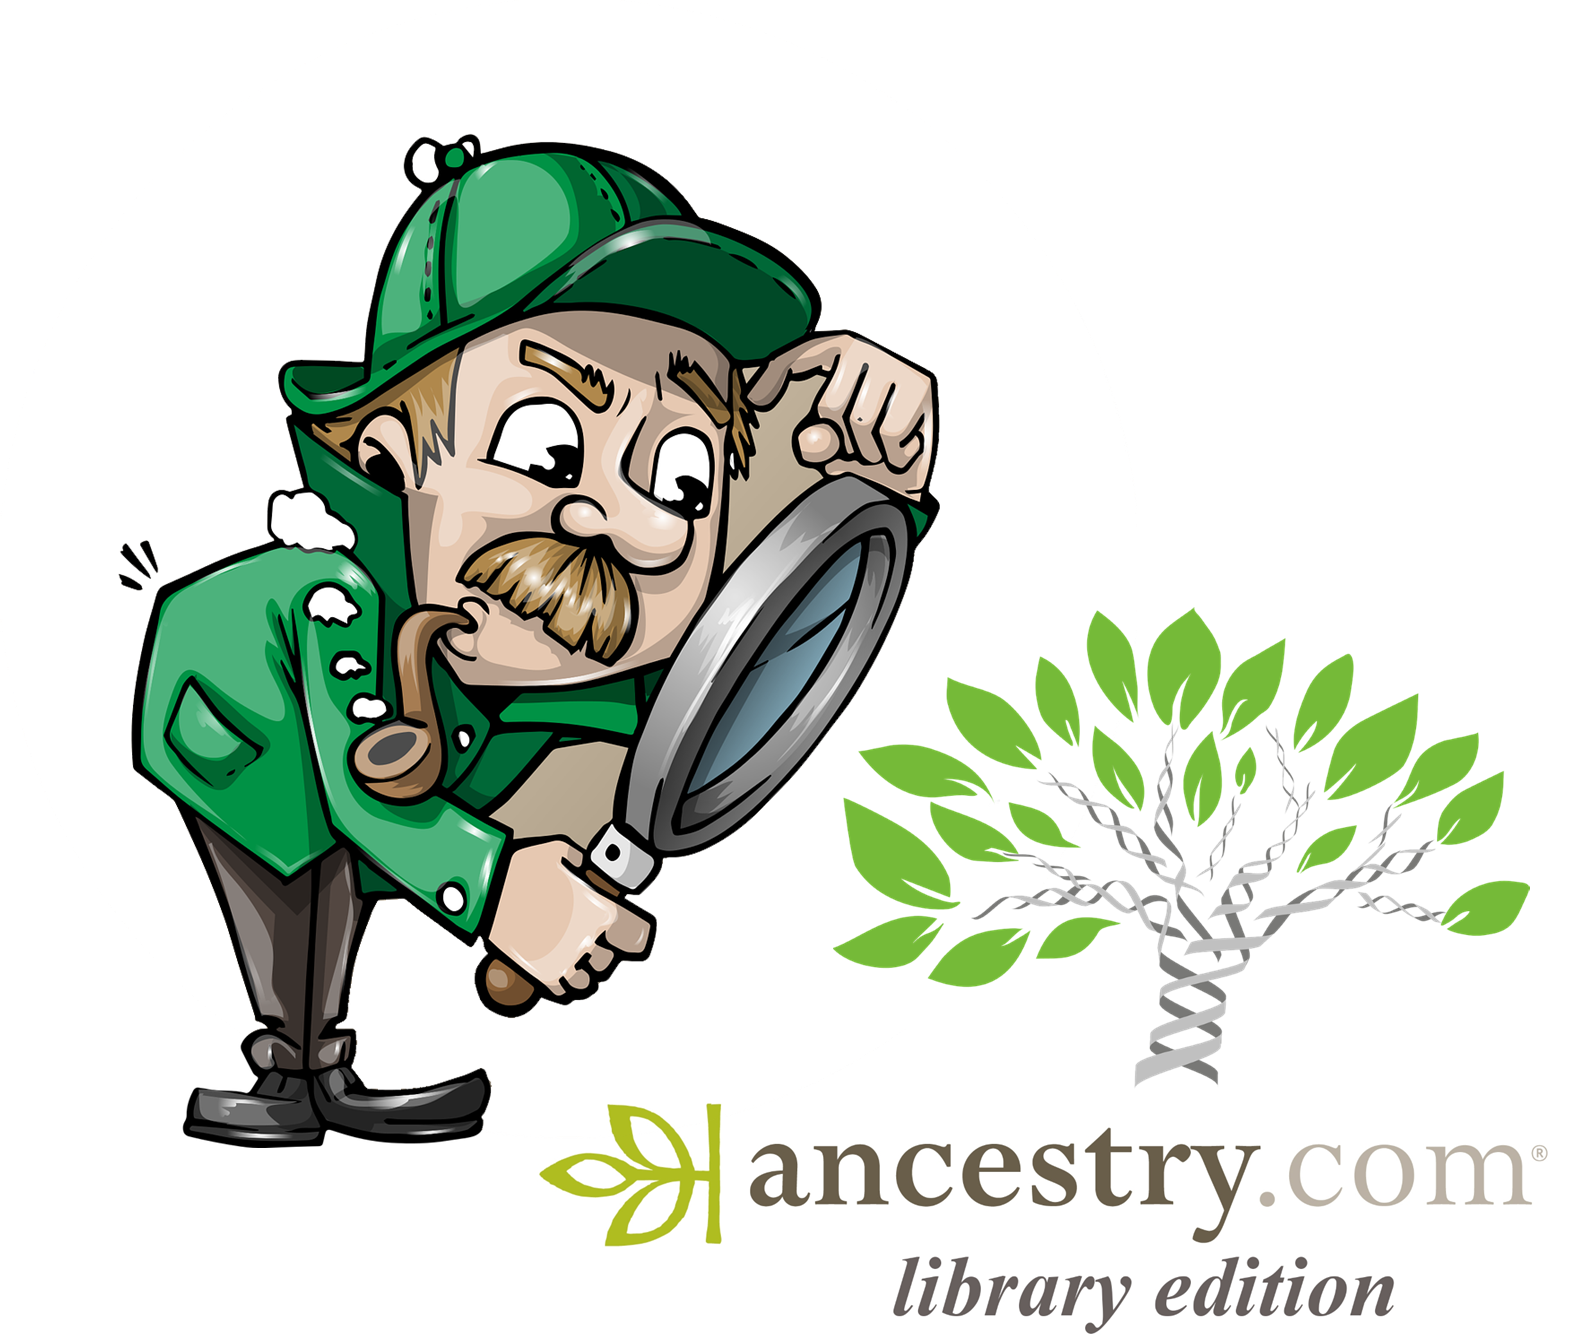 Looking for Ancestry Library edition?  image with link